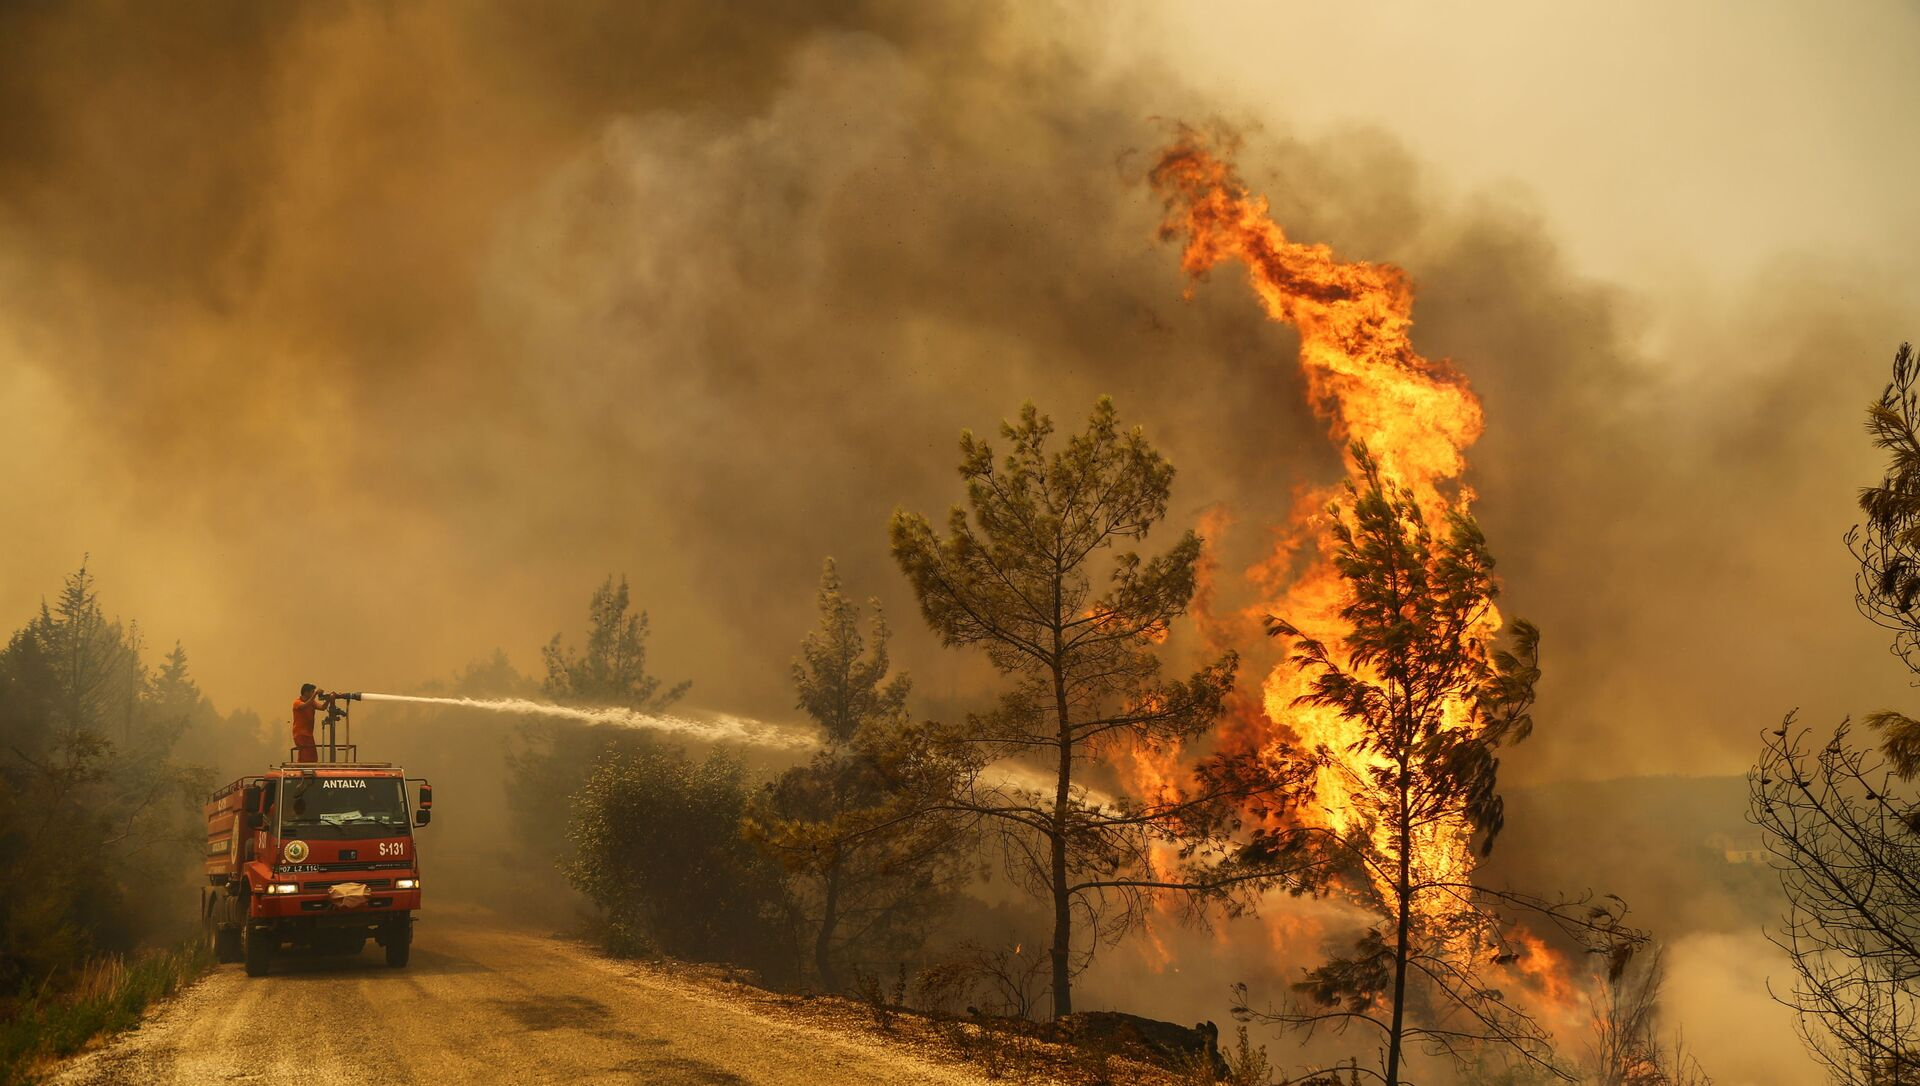 A firefighter extinguishes a forest fire near the town of Manavgat, east of the resort city of Antalya, Turkey, July 30, 2021. REUTERS/Kaan Soyturk - Sputnik International, 1920, 31.07.2021